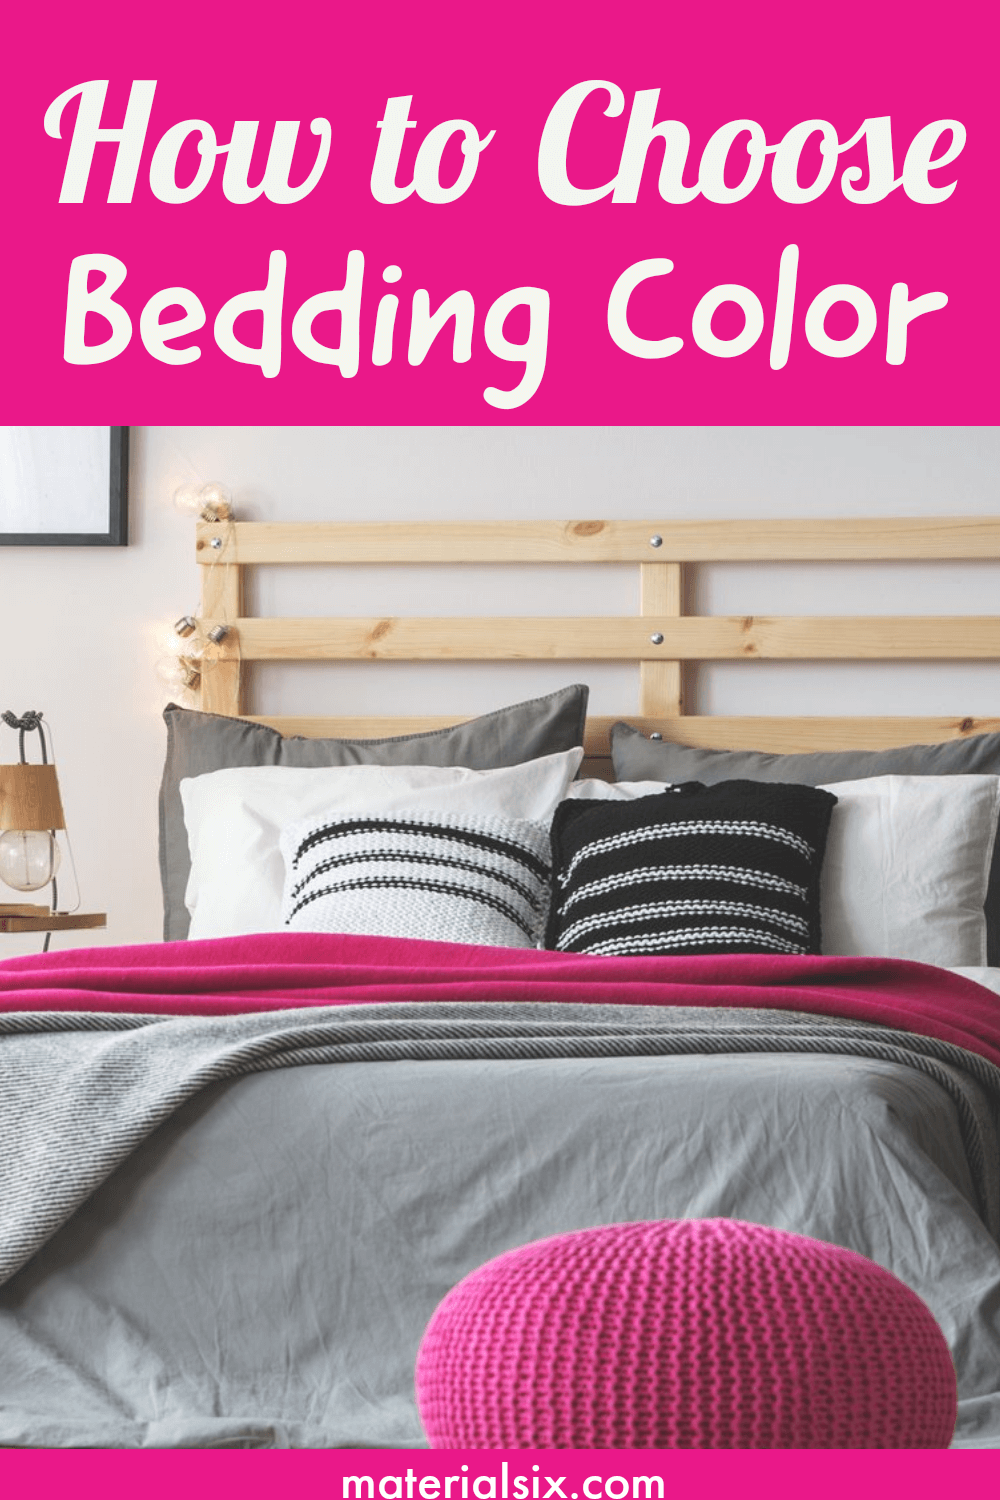 how to choose bedding color